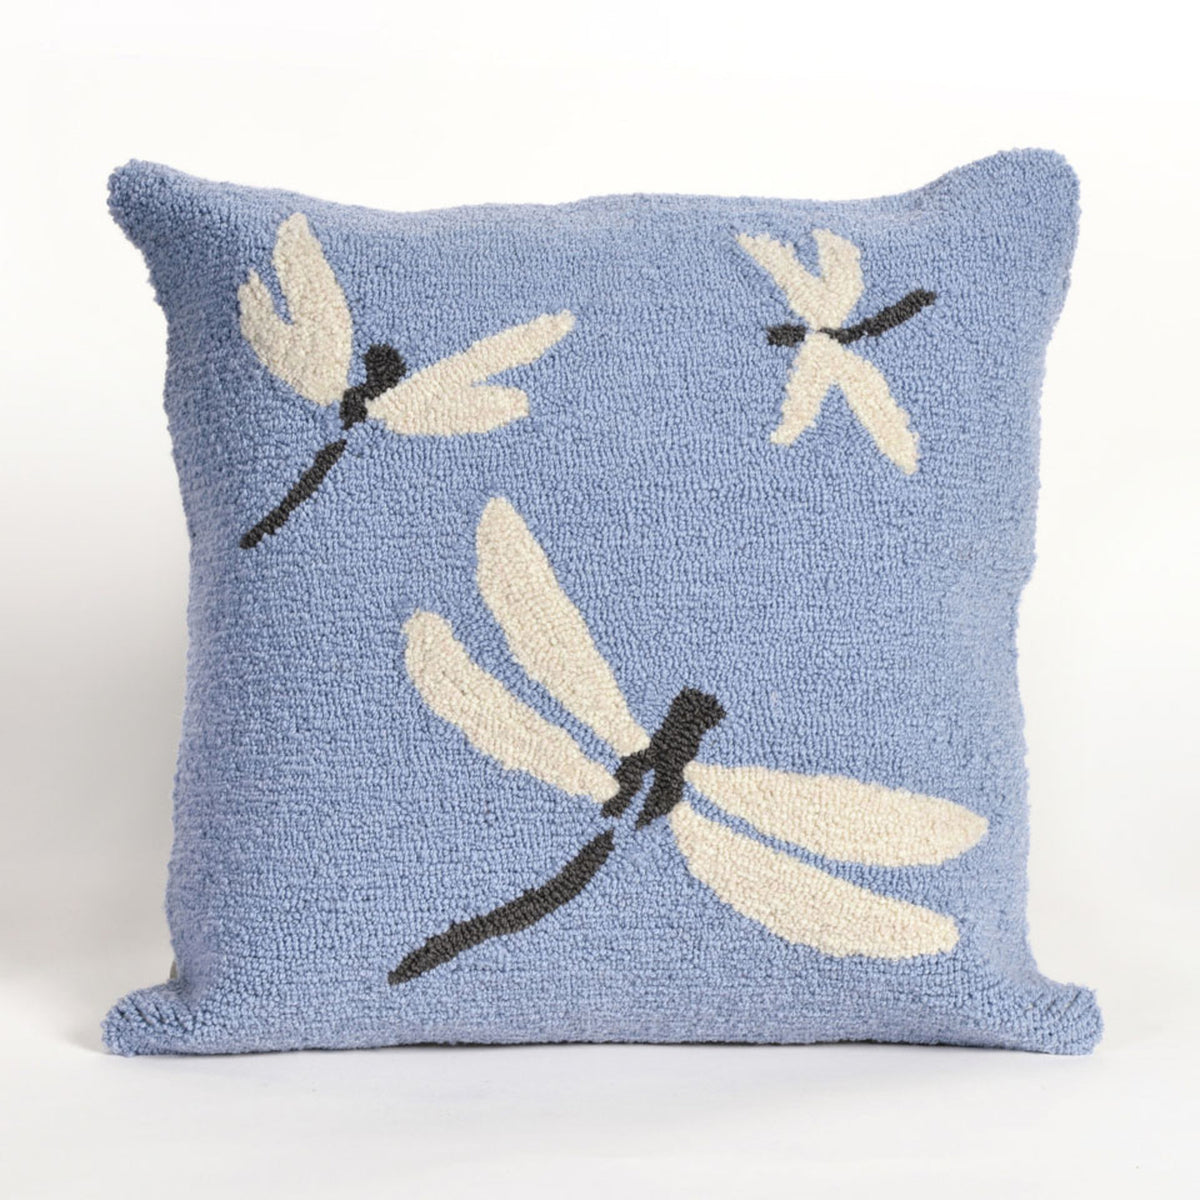 Frontporch Dragonfly Blue Pillows